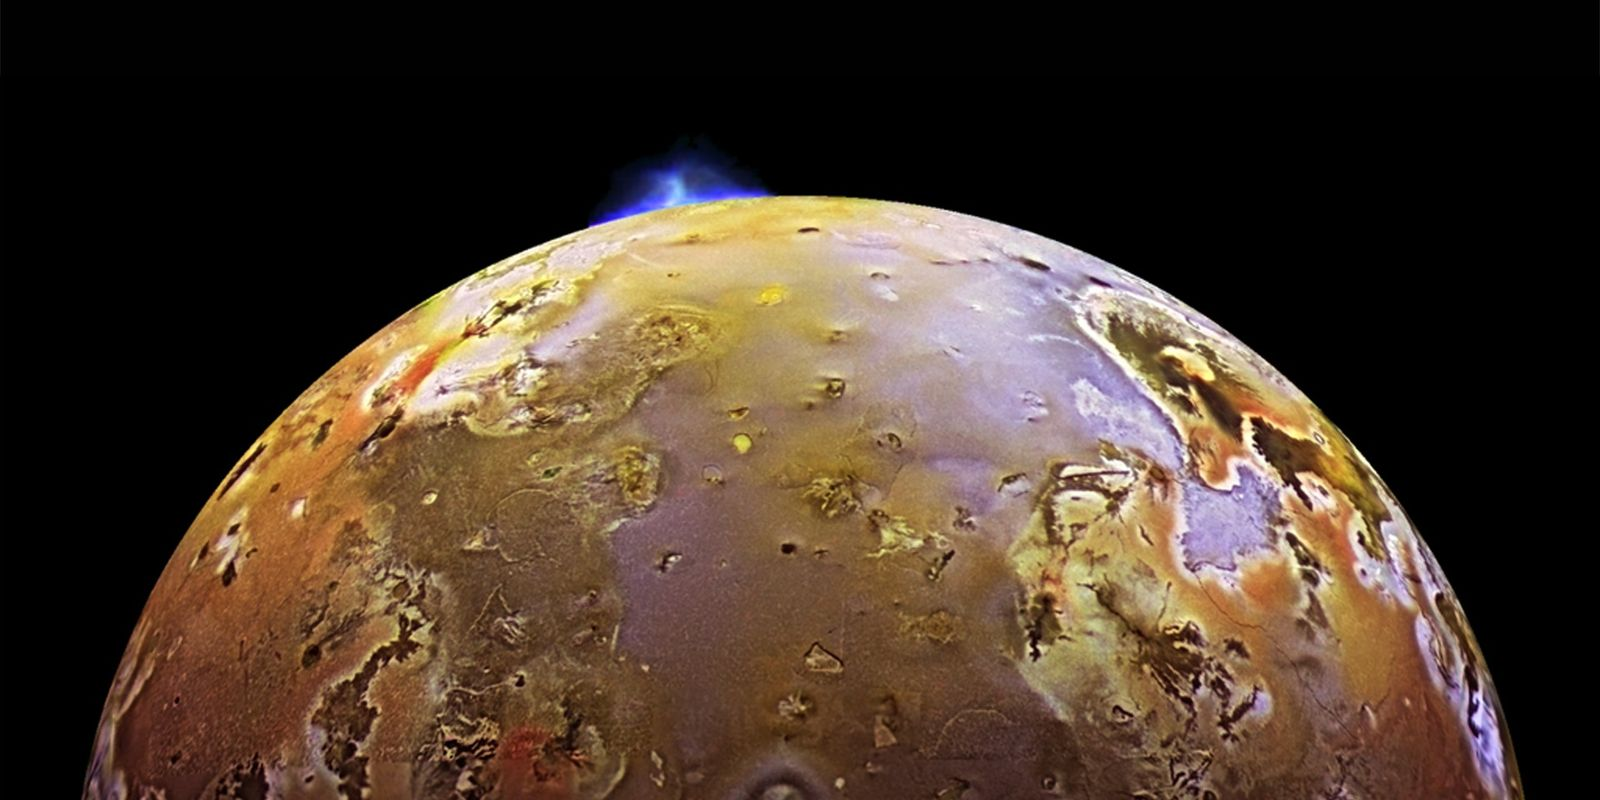 This is our best look yet at the solar system's most volcanic object